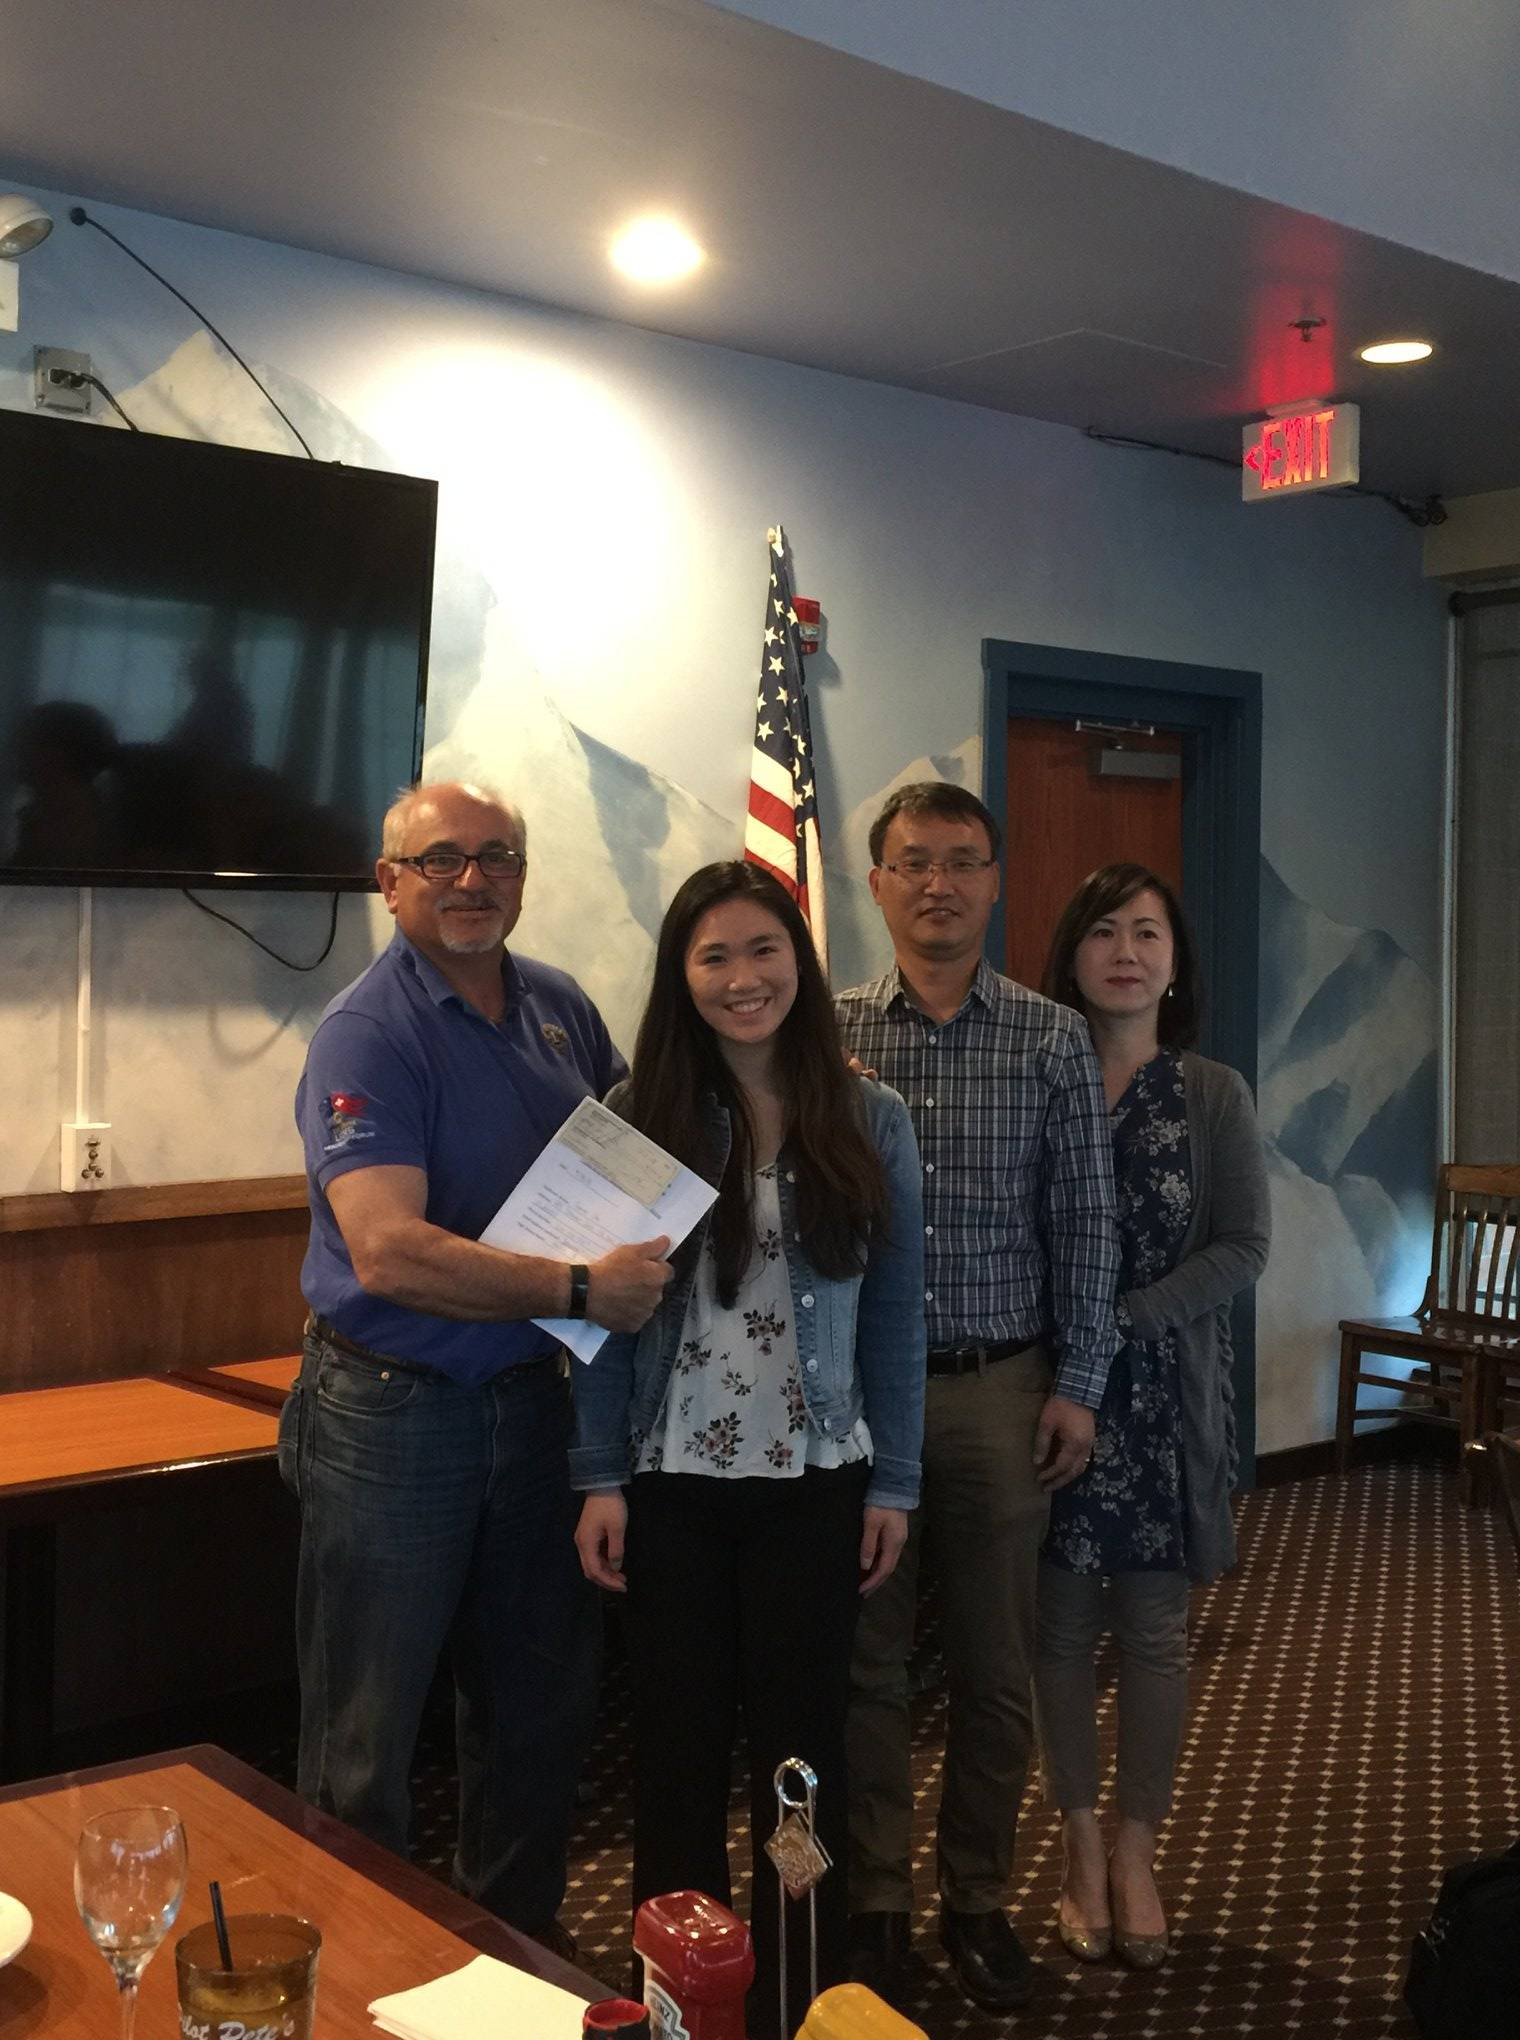 Club President Chris Marks presented the Schaumburg-Hoffman Lions Club 2018 scholarship to Joanne Cho and her parents on May 3, 2018 at Pilot Pete's Restaurant in Schaumburg.Michael Marks